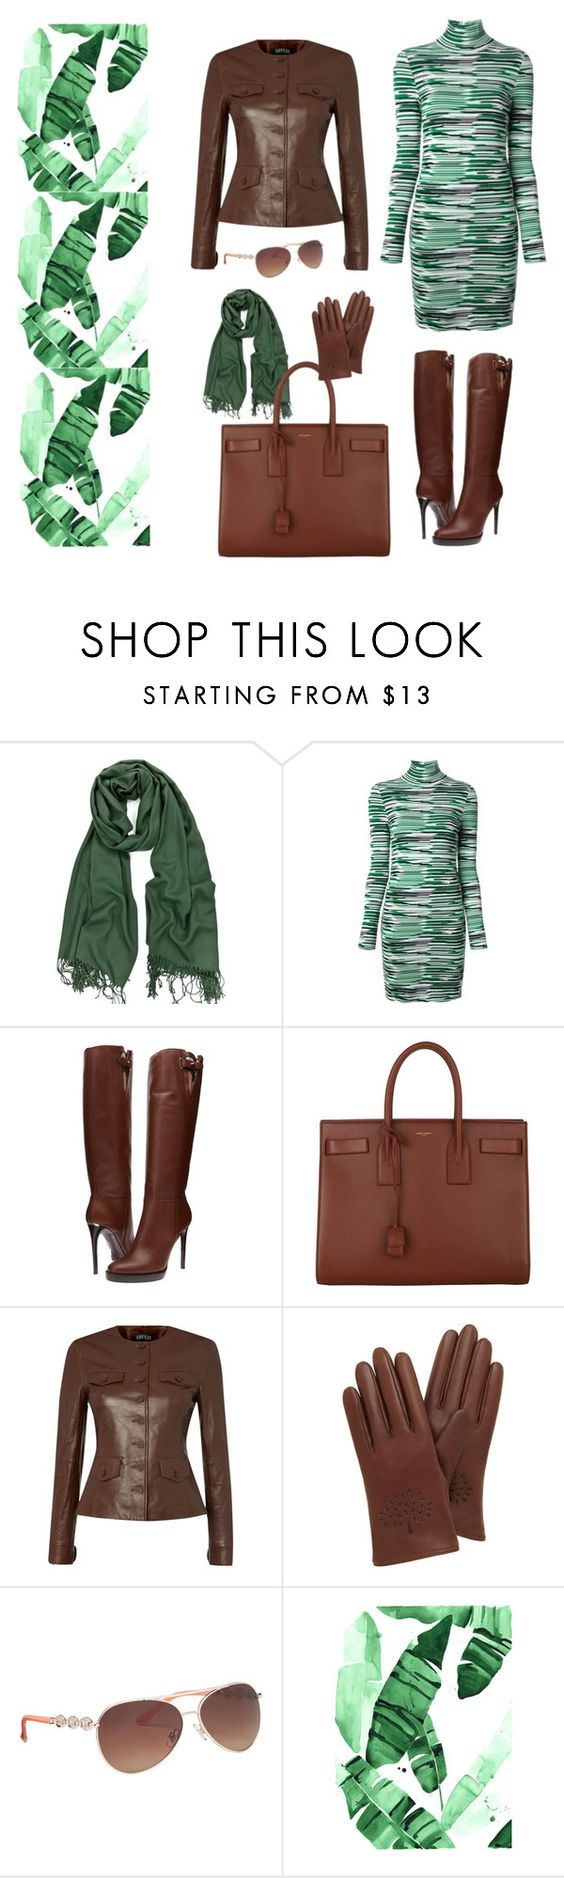 """""""Stella"""" by b-nieves ❤ liked on Polyvore featuring STELLA McCARTNEY, Burberry, Yves Saint Laurent, Lauren Ralph Lauren, Mulberry and maurices"""